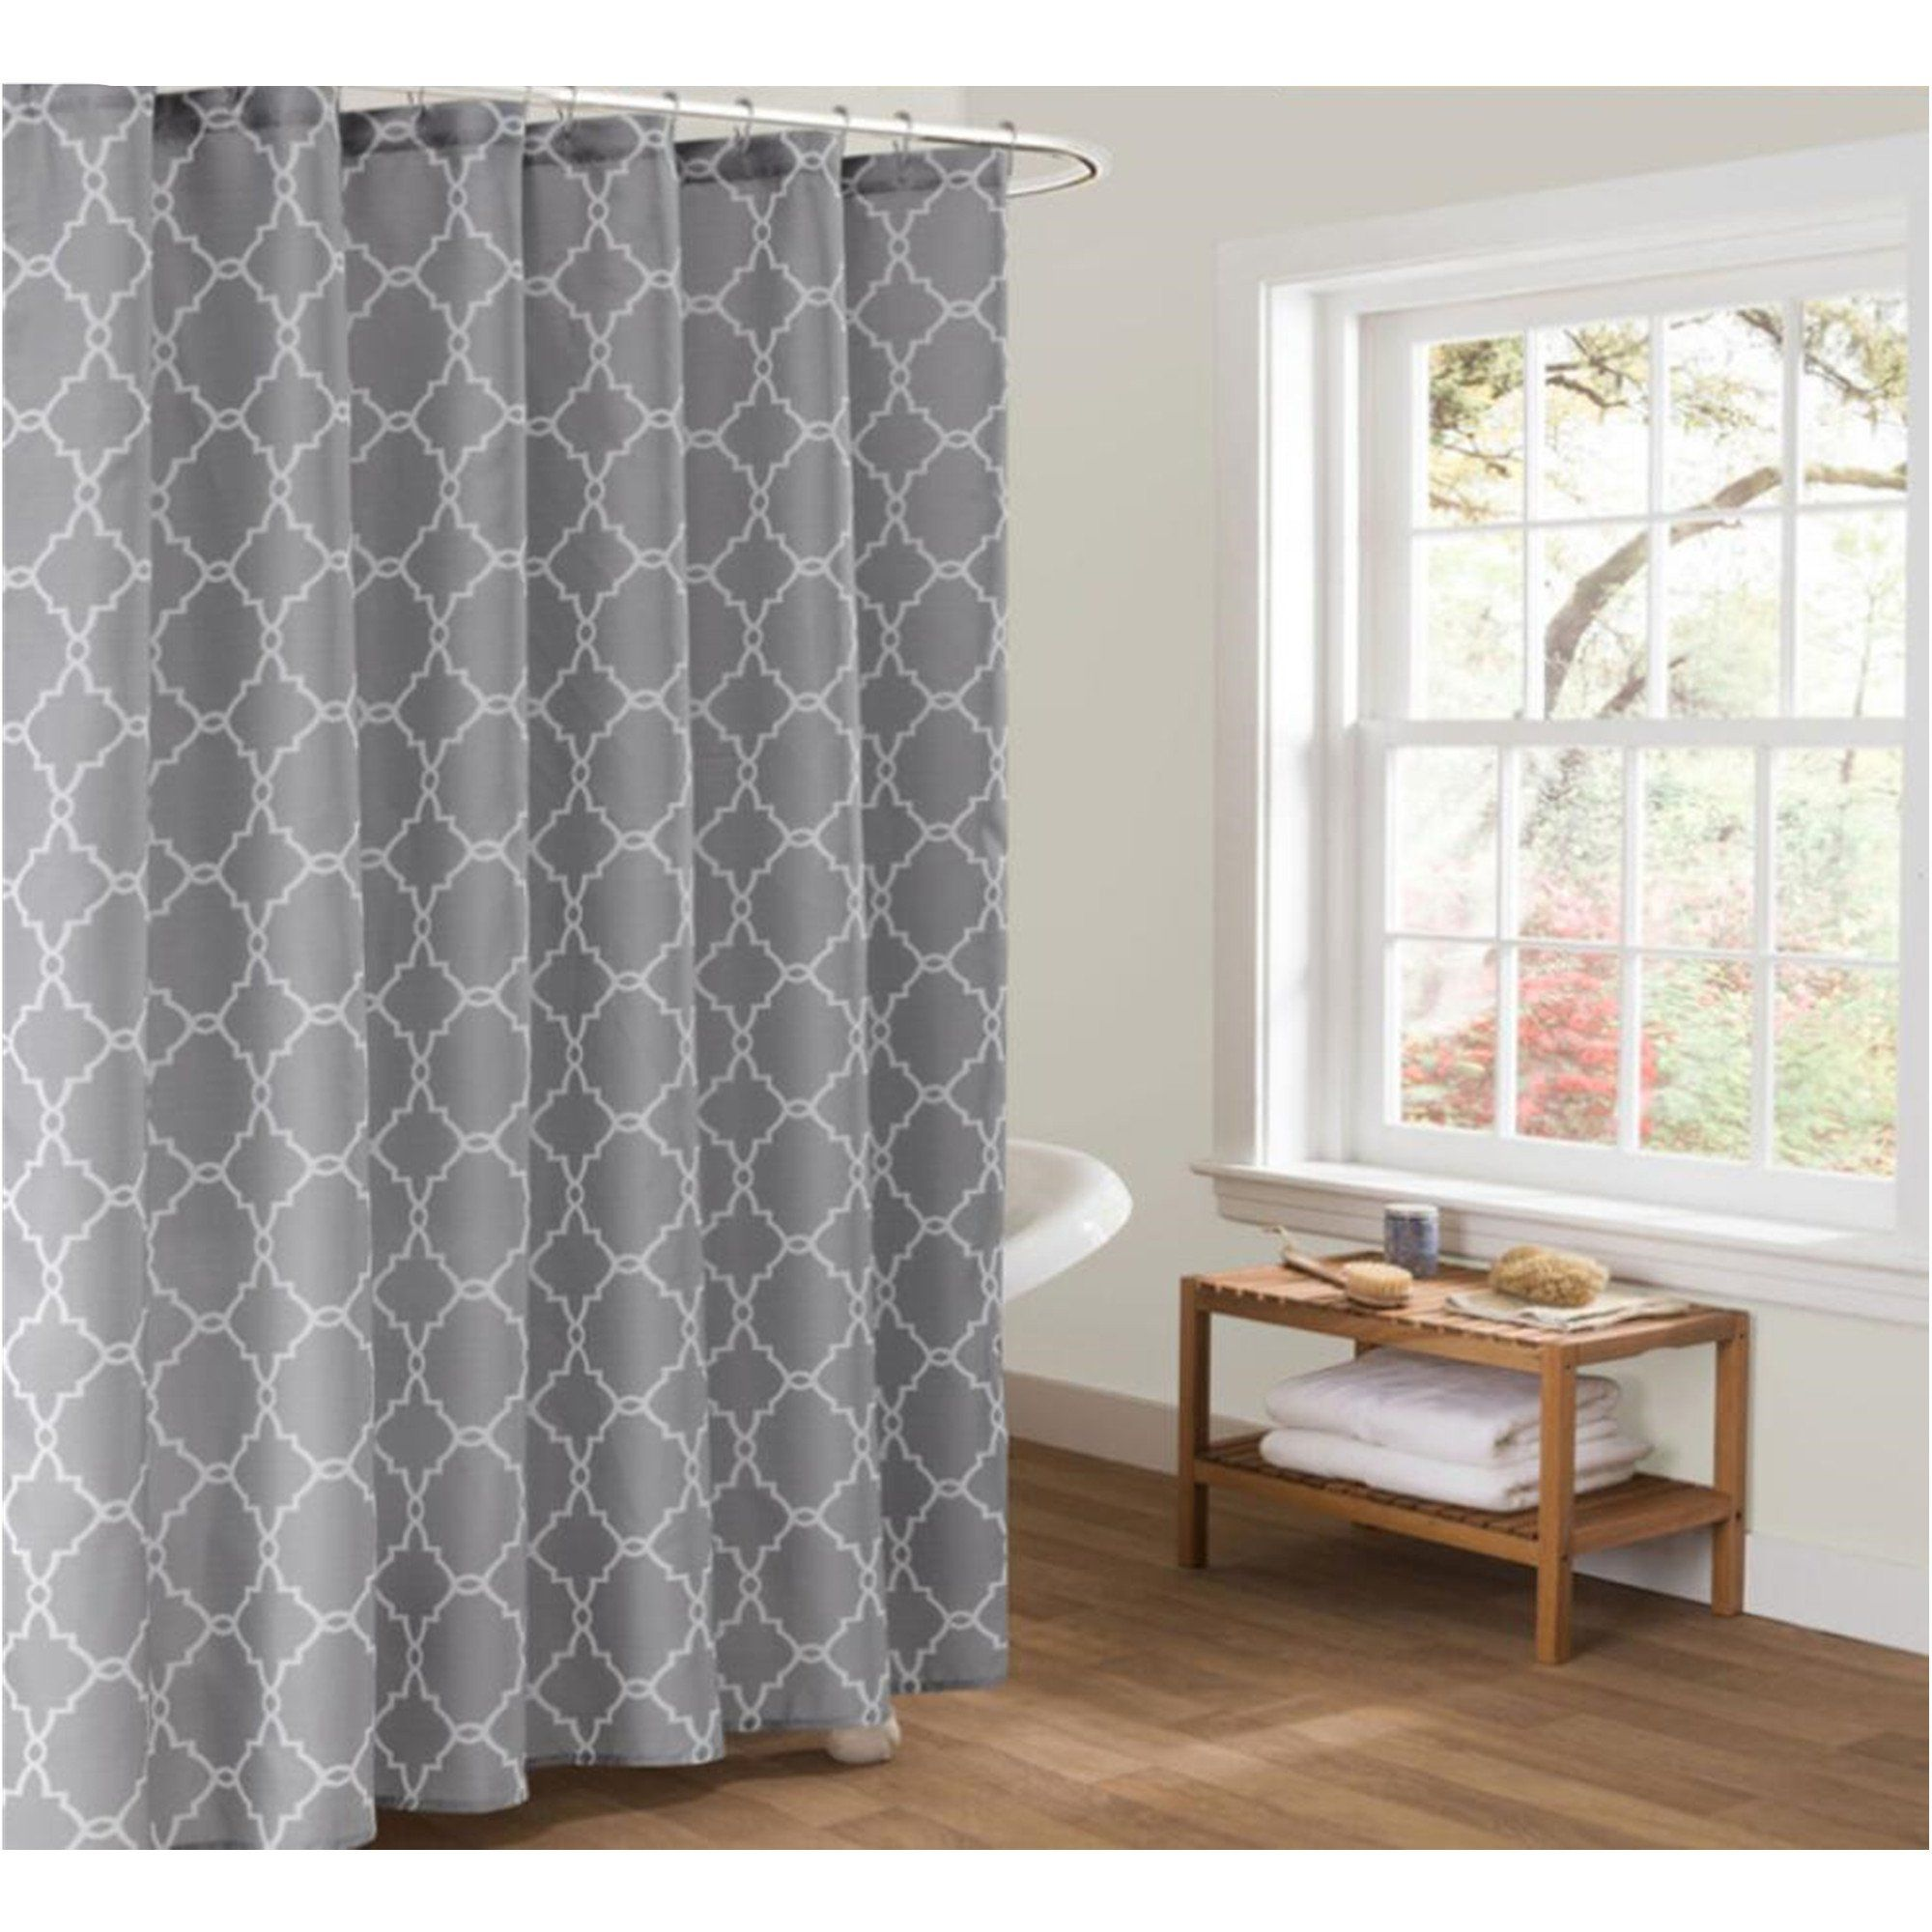 Cryseam Shower Curtains Gray Geometry Pattern For Bathroom